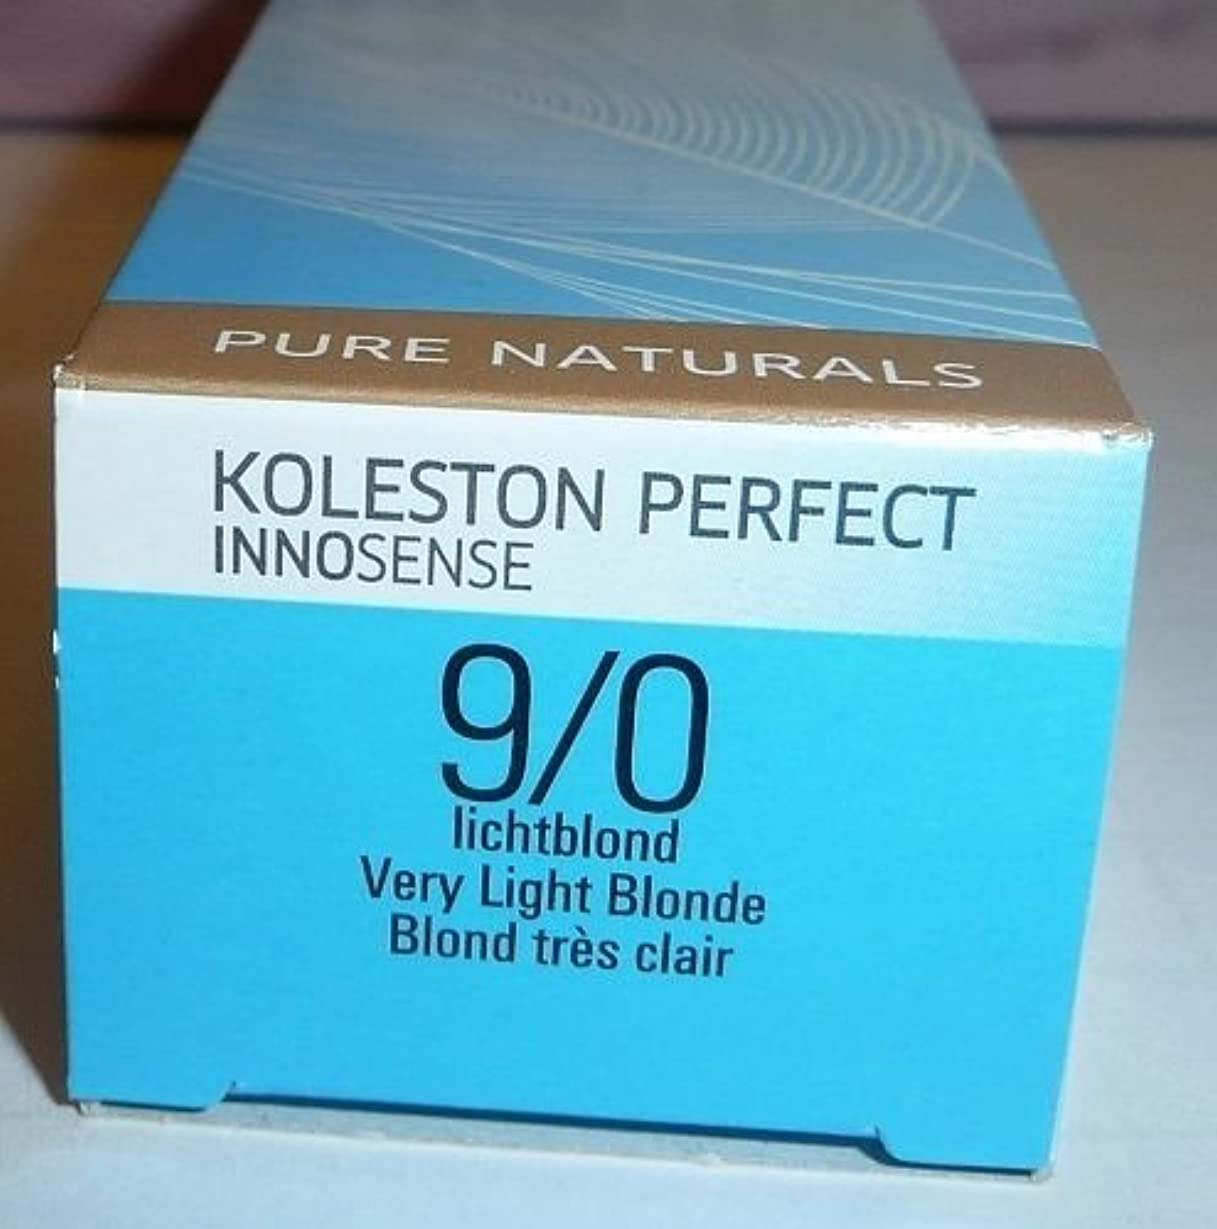 ハイランド舗装する一定Wella Koleston Perfect INNOSENSE Hair Color Very Light Blonde 9/0 2 oz by Wella [並行輸入品]